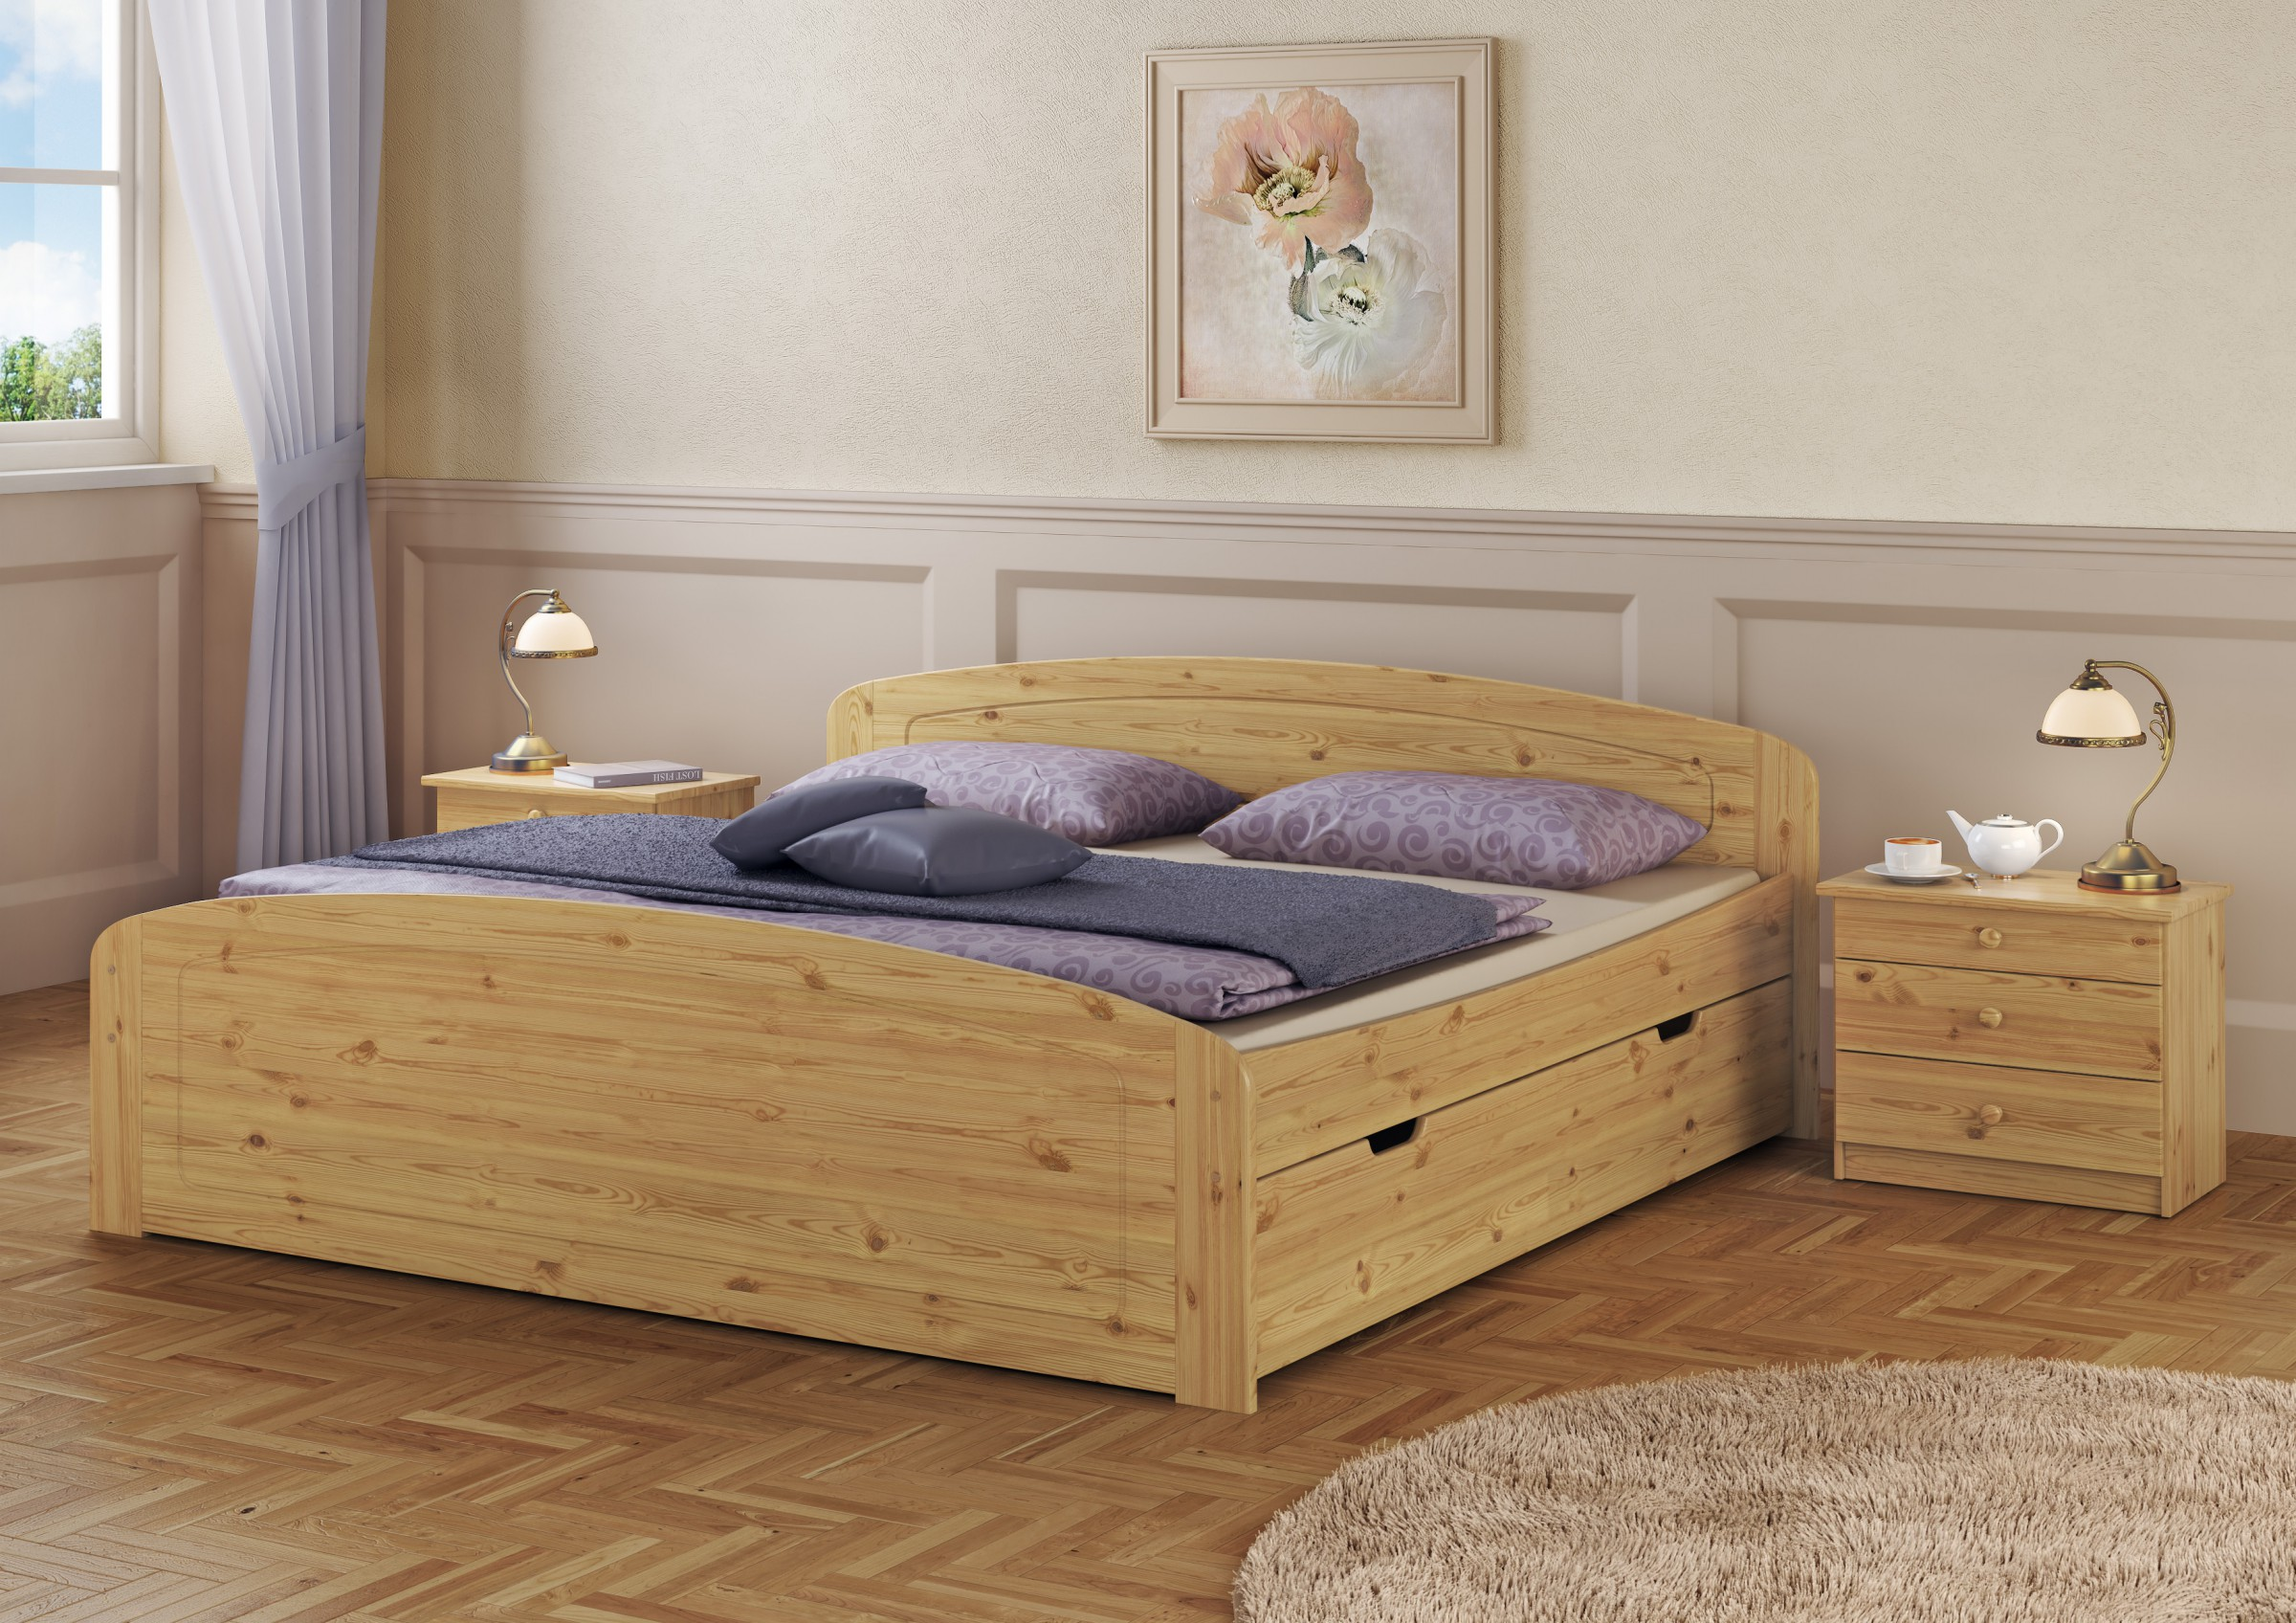 funktionsbett doppelbett bettkasten rollrost 160x200. Black Bedroom Furniture Sets. Home Design Ideas